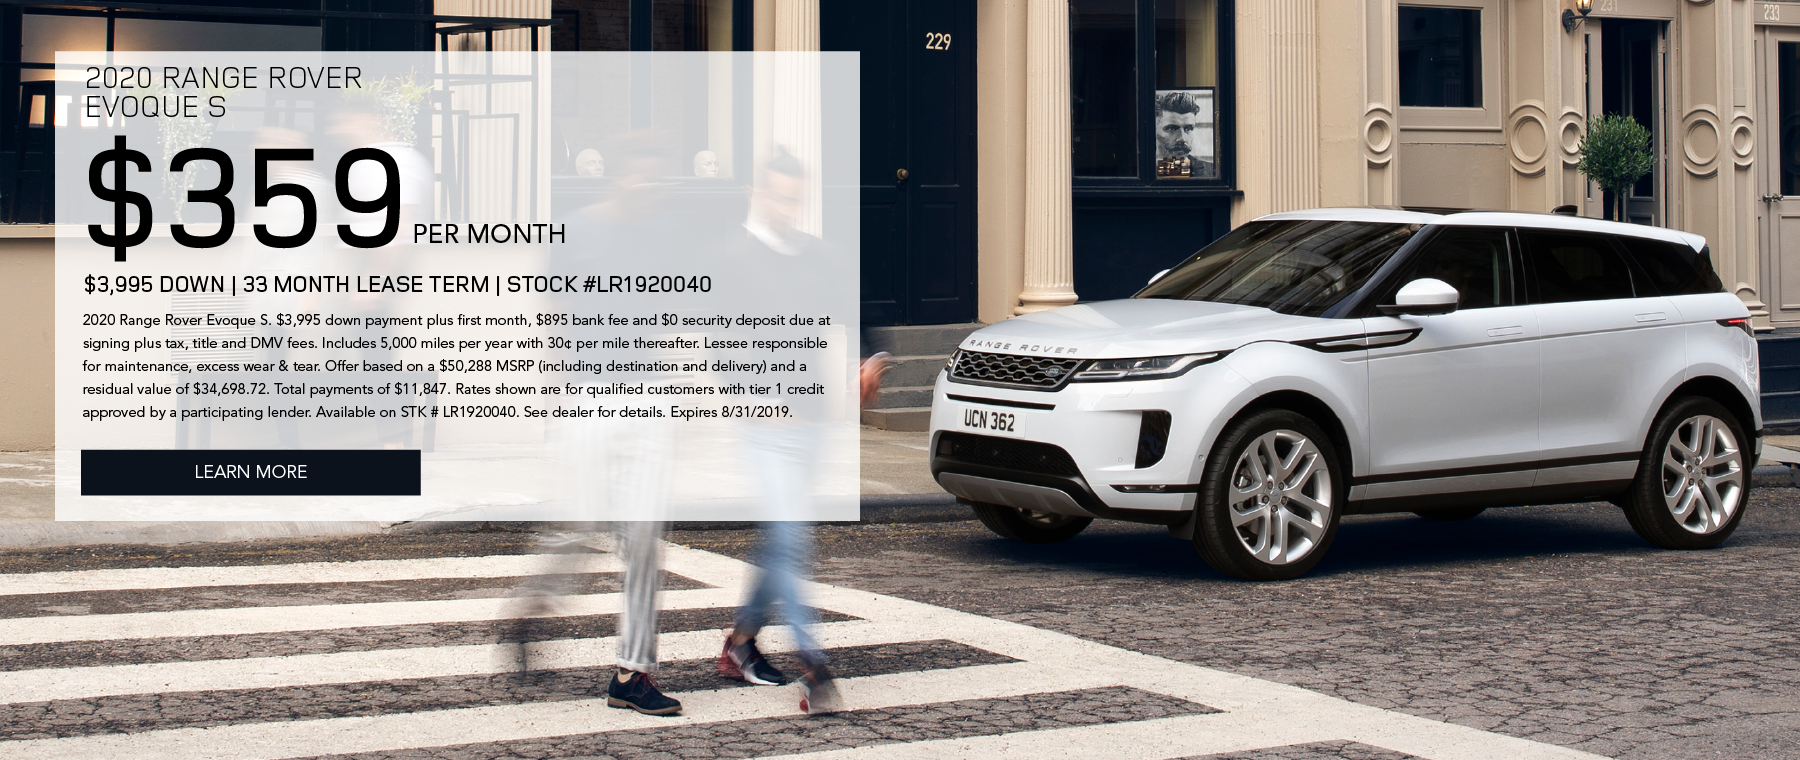 Range Rover Dealers In Ma >> Land Rover Manhattan Land Rover Dealer In Nyc